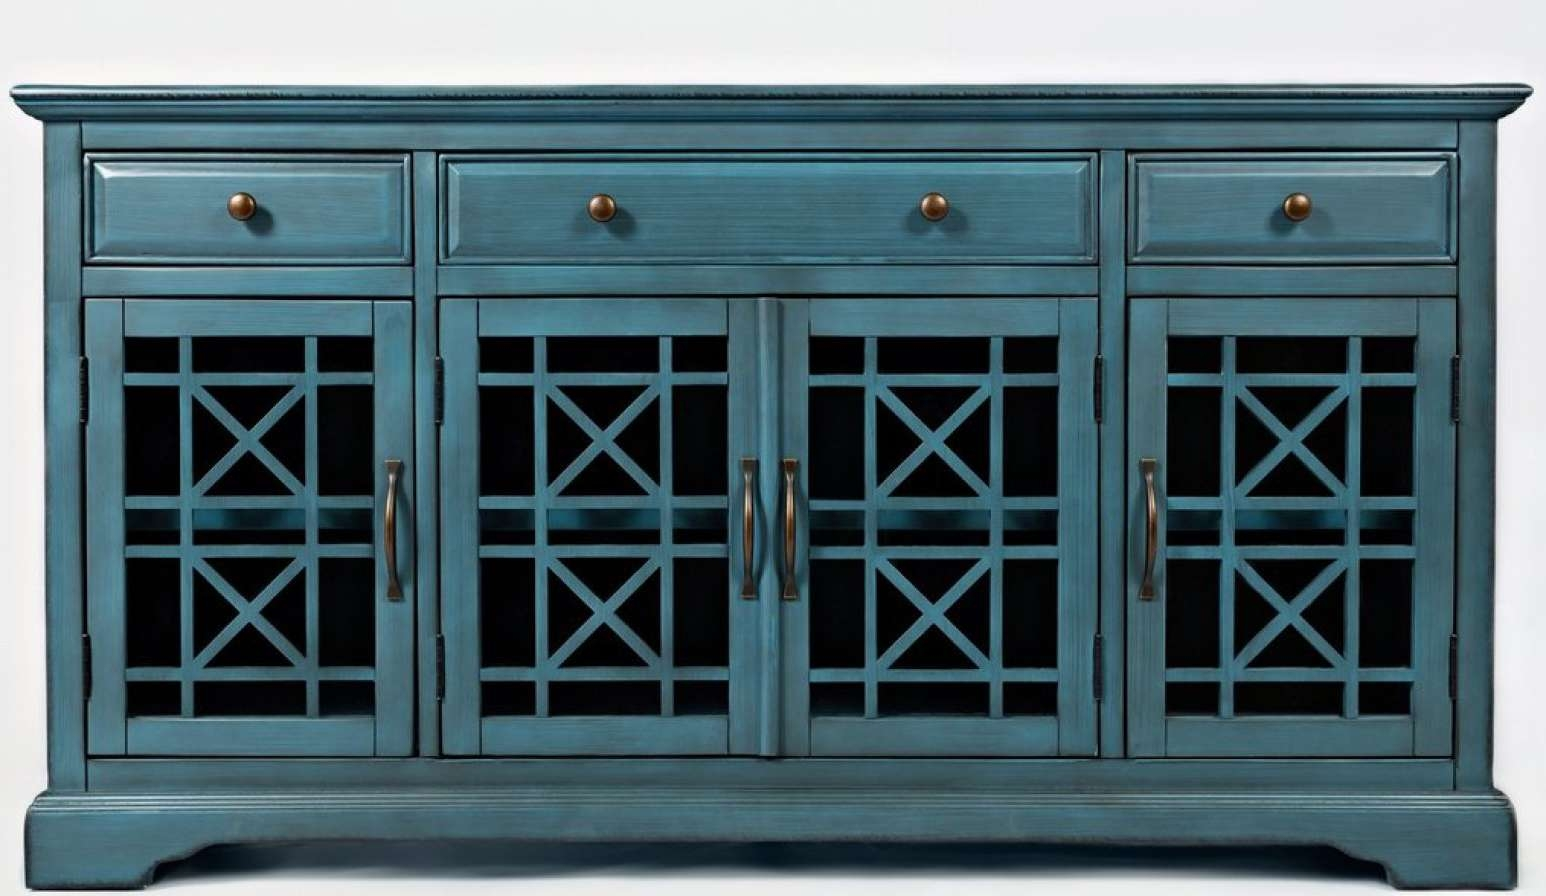 Sideboard : Elegant Sideboards Notable Decorating An Antique Within Elegant Sideboards (View 19 of 20)